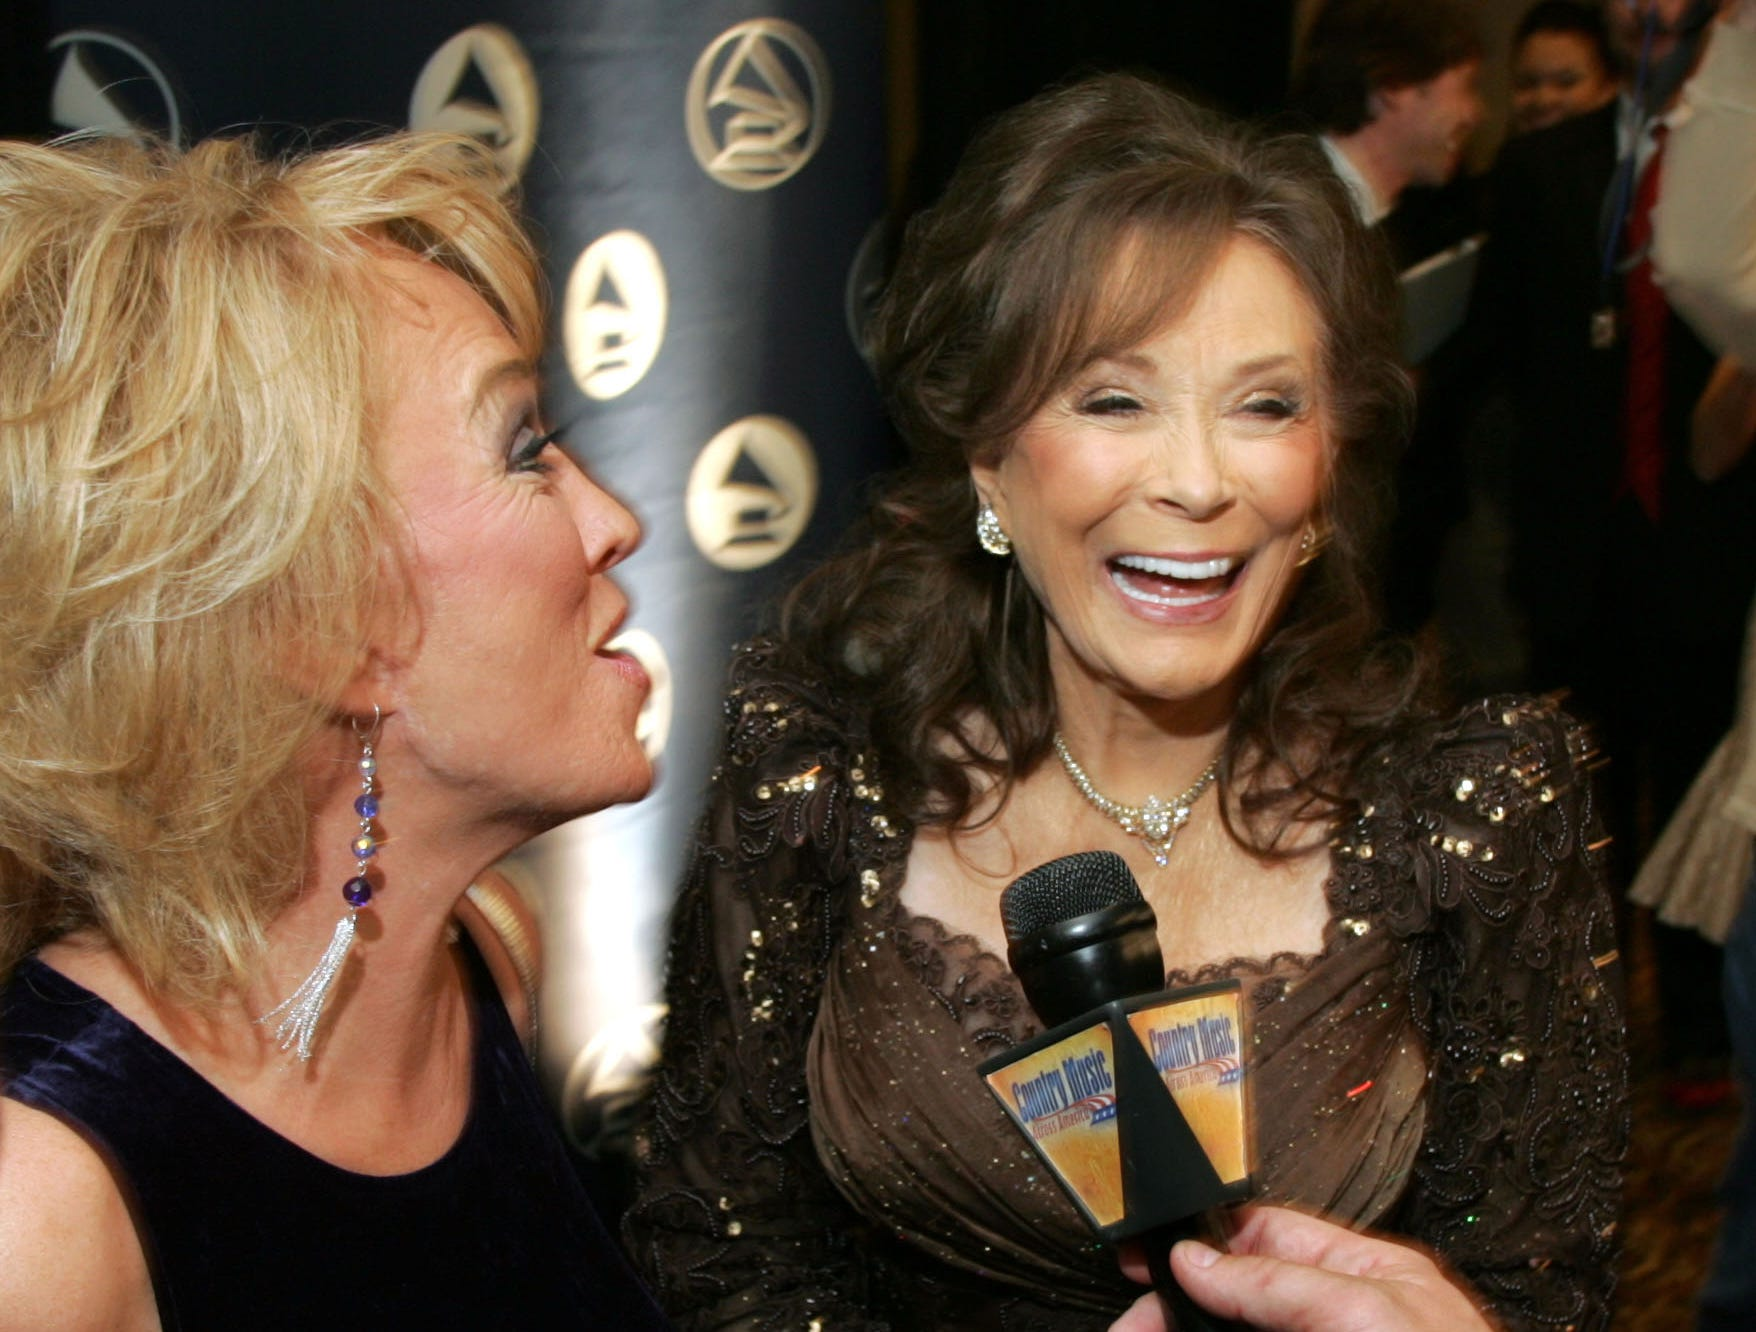 Loretta Lynn, right, and Tanya Tucker share a laugh during an interview with reporters before the 2007 Recording Academy Honors at the Loews Vanderbilt Plaza Hotel in Nashville April 9, 2007.